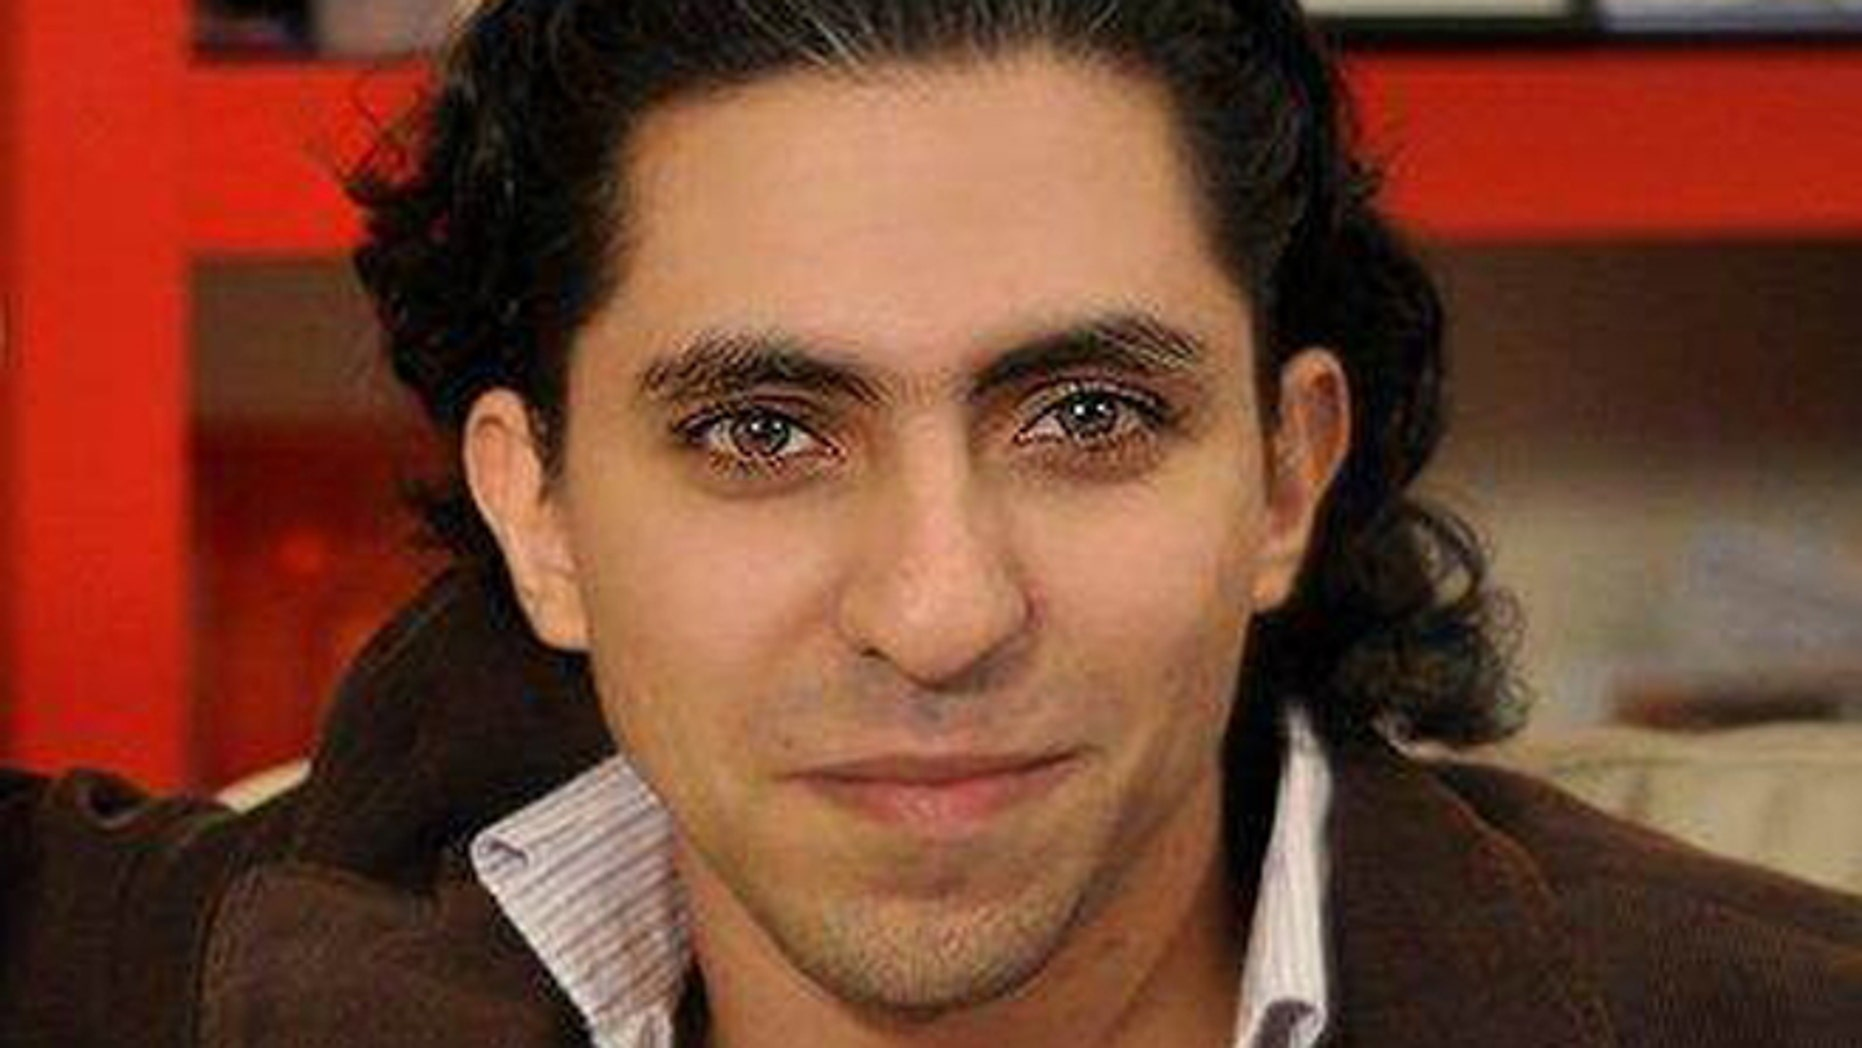 Raif Badawi, a Saudi website founder and blogger. Badawi-- who was sentenced to 1,000 lashes and 10 years in prison for criticizing Islam-- may now face the death penalty.